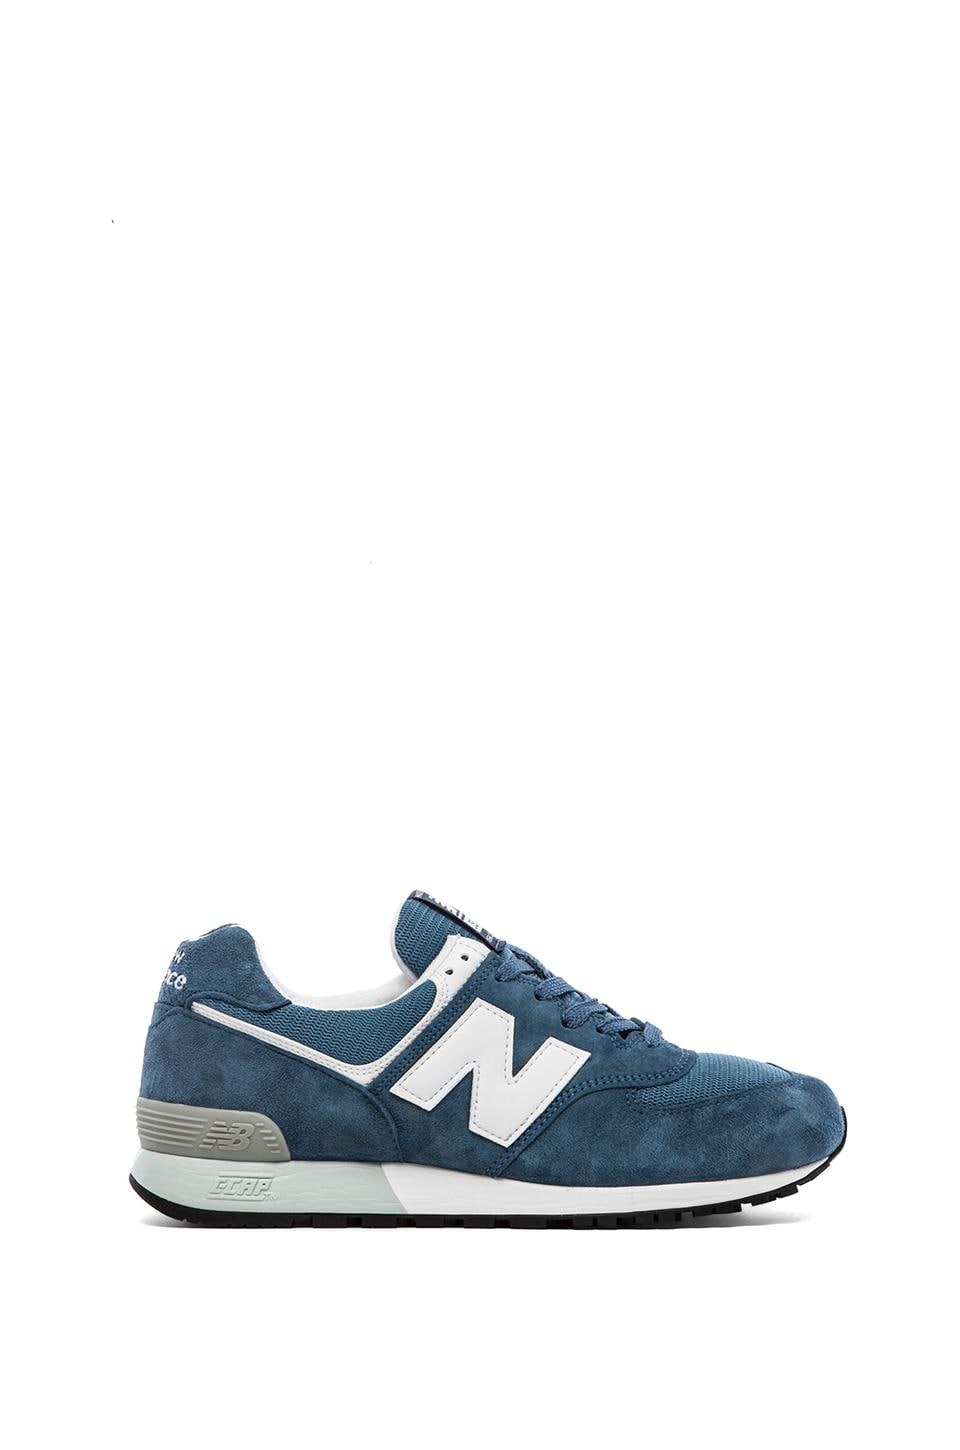 New Balance Made in USA US576 in Blue & White